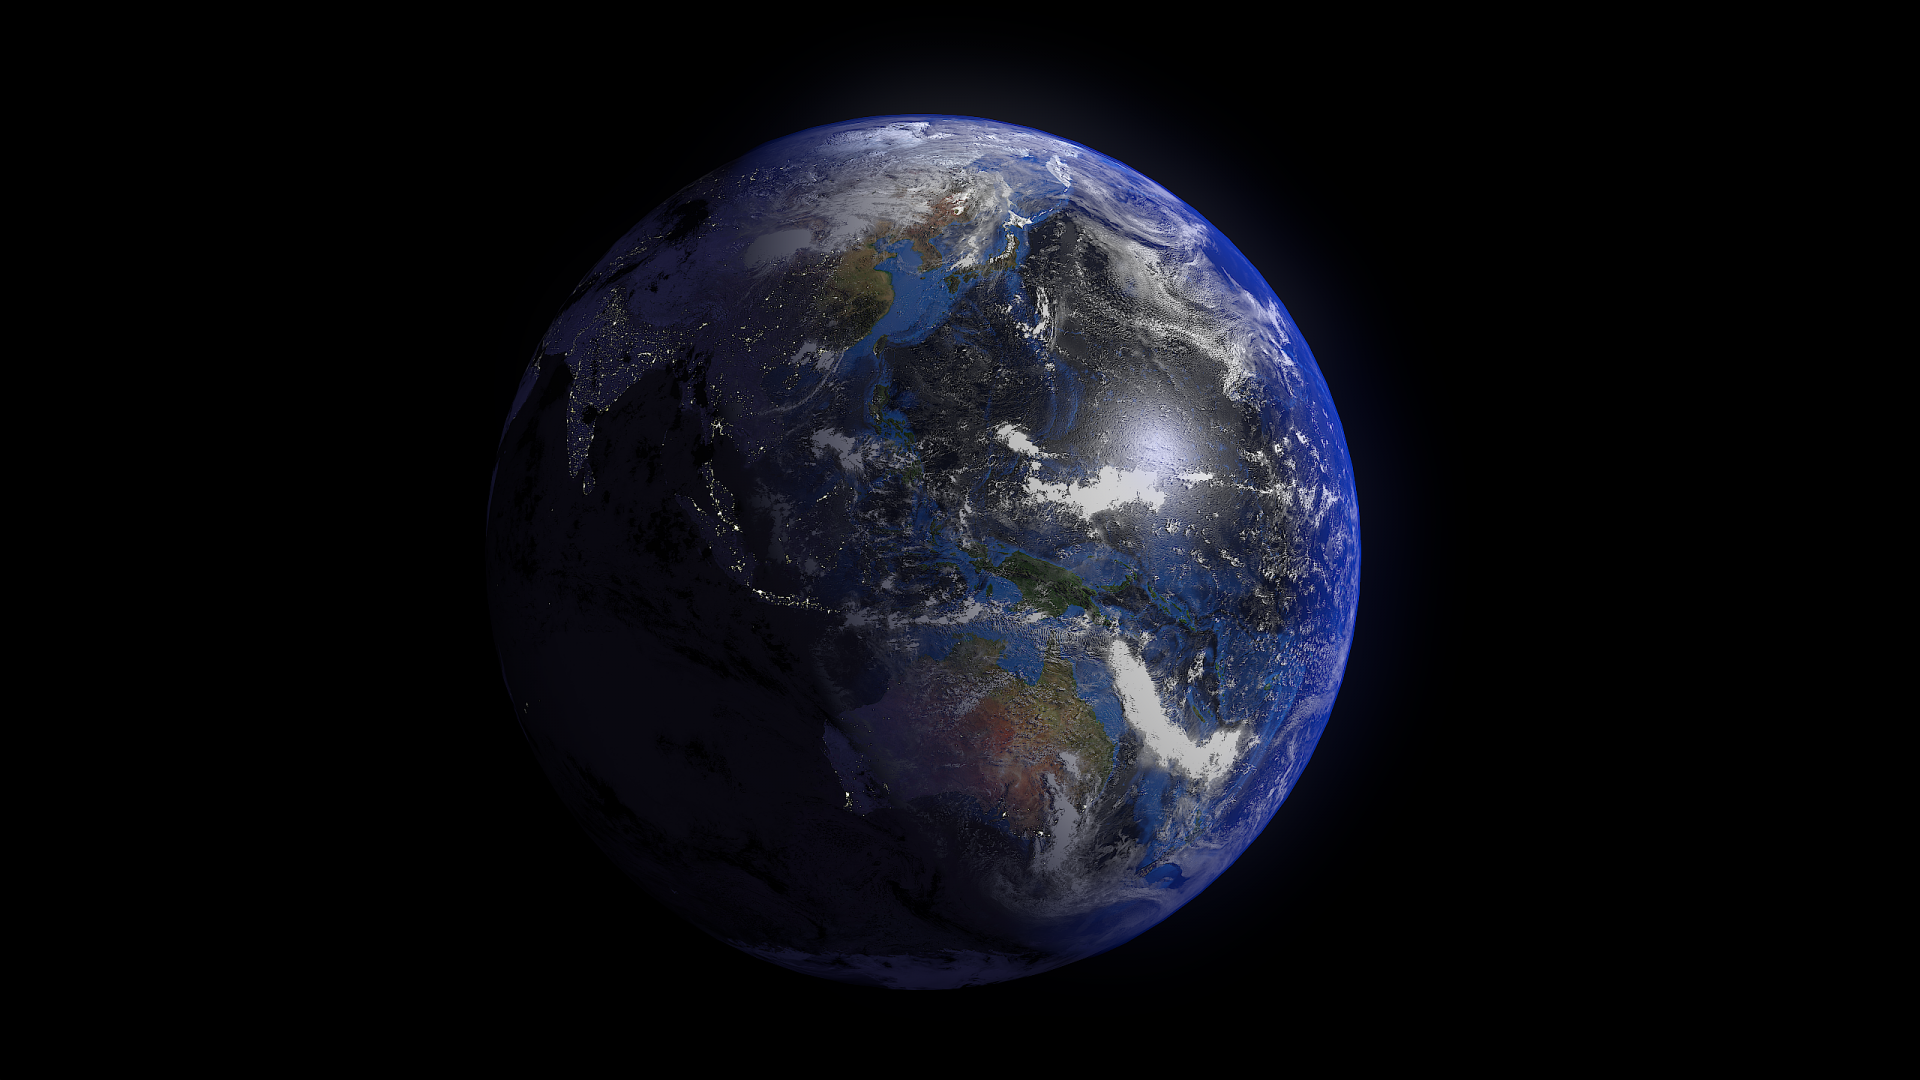 earth 10k 3d model 3ds fbx blend dae obj 209744